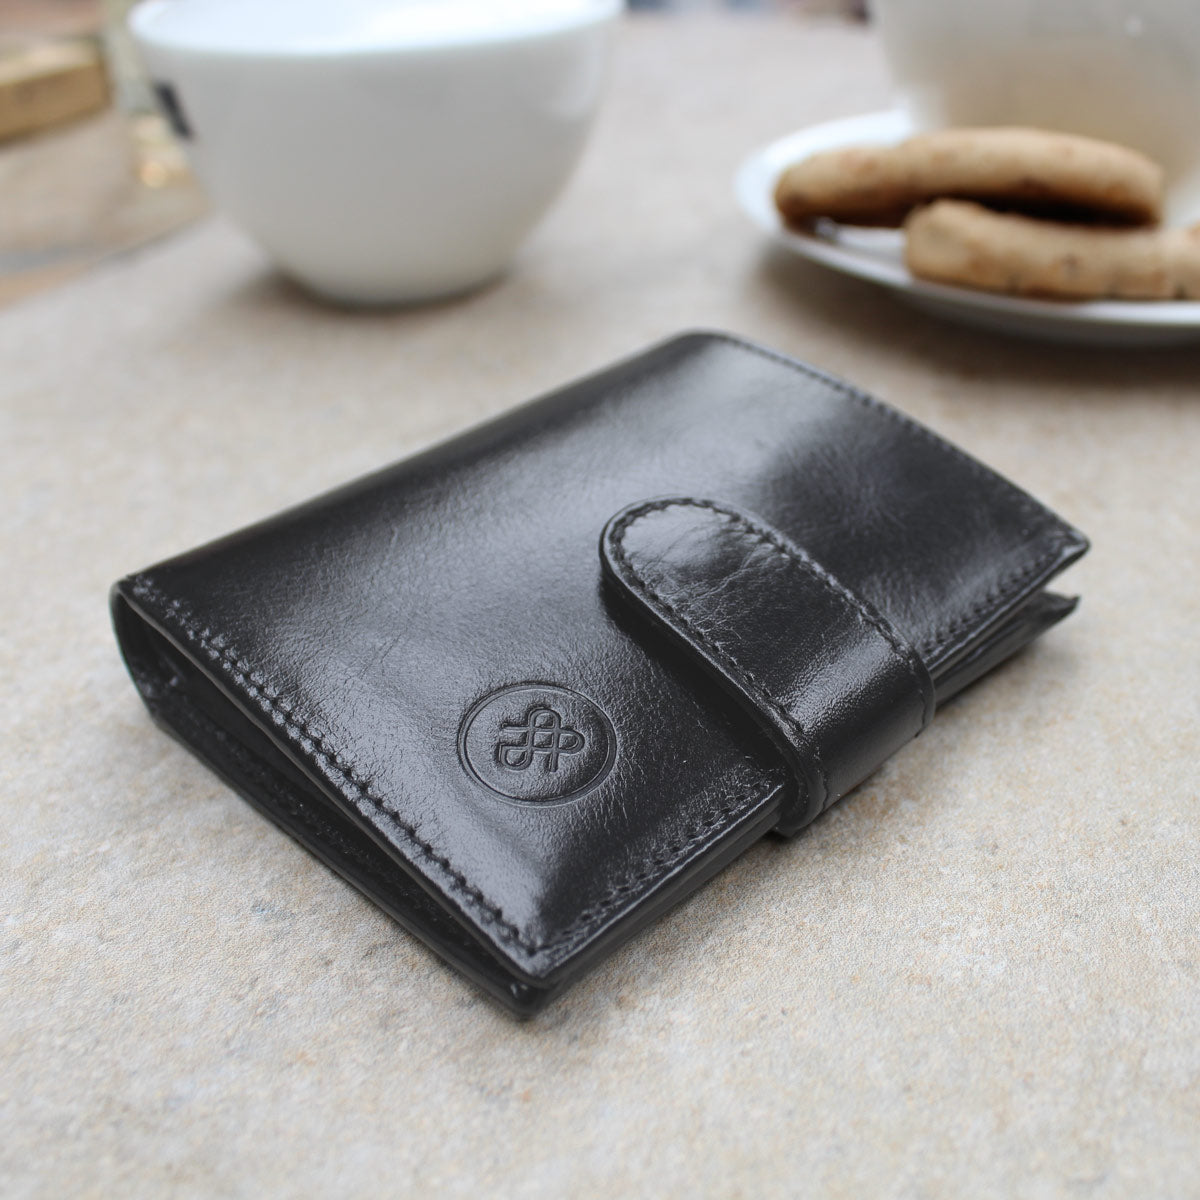 Image 7 of the 'Pietre' Brown Veg-Tanned Leather Compact Wallet